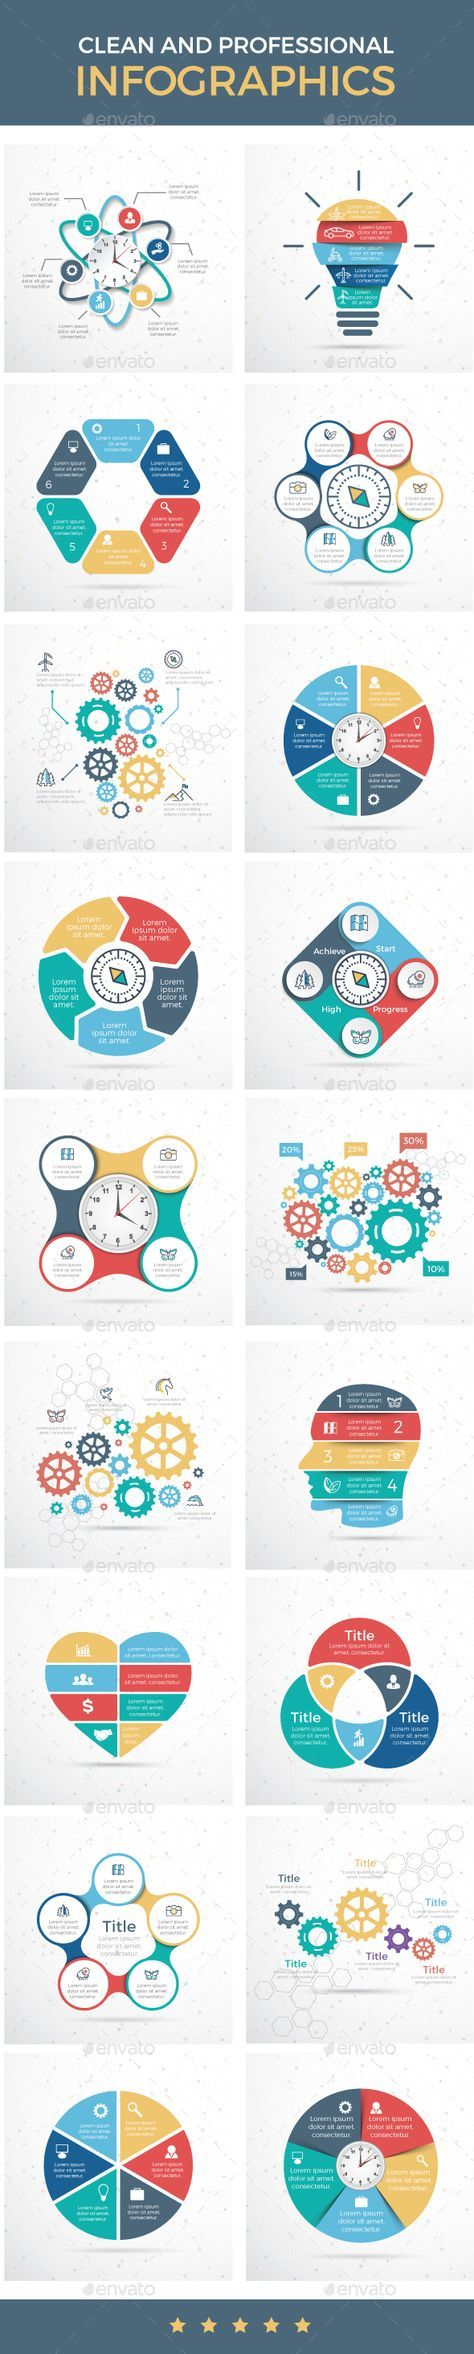 Infographic Design Templates Vector EPS, AI Illustrator